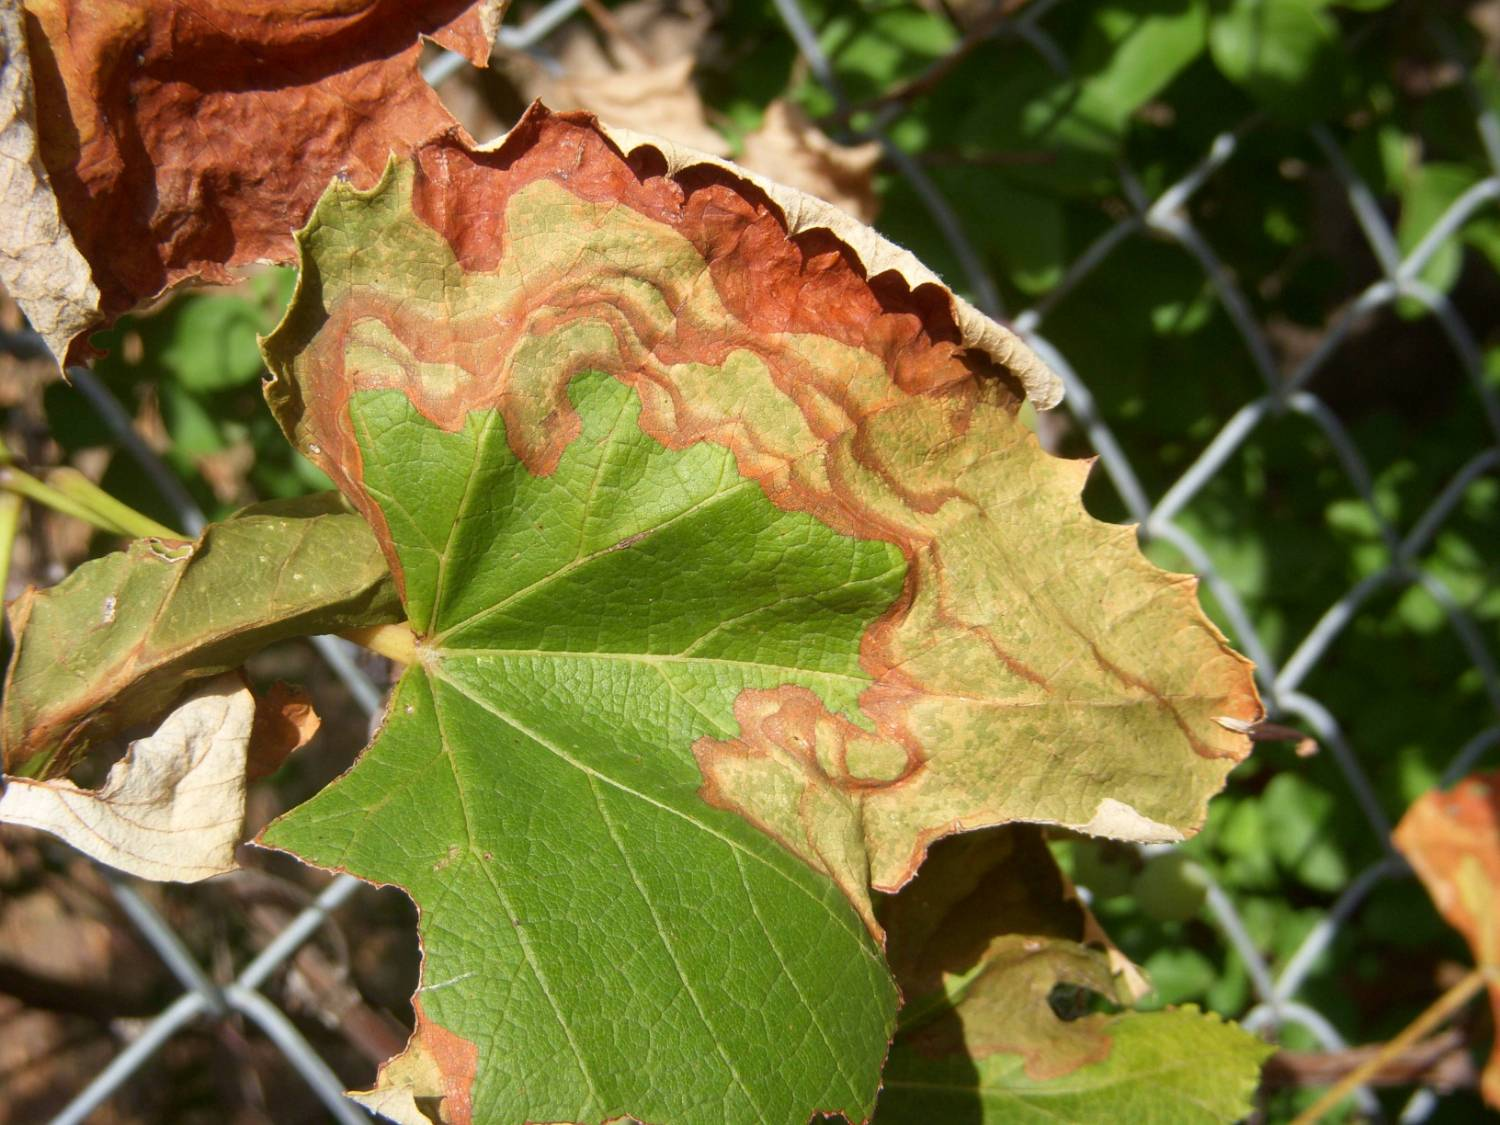 This is a photo of a plant with Pierce's disease.